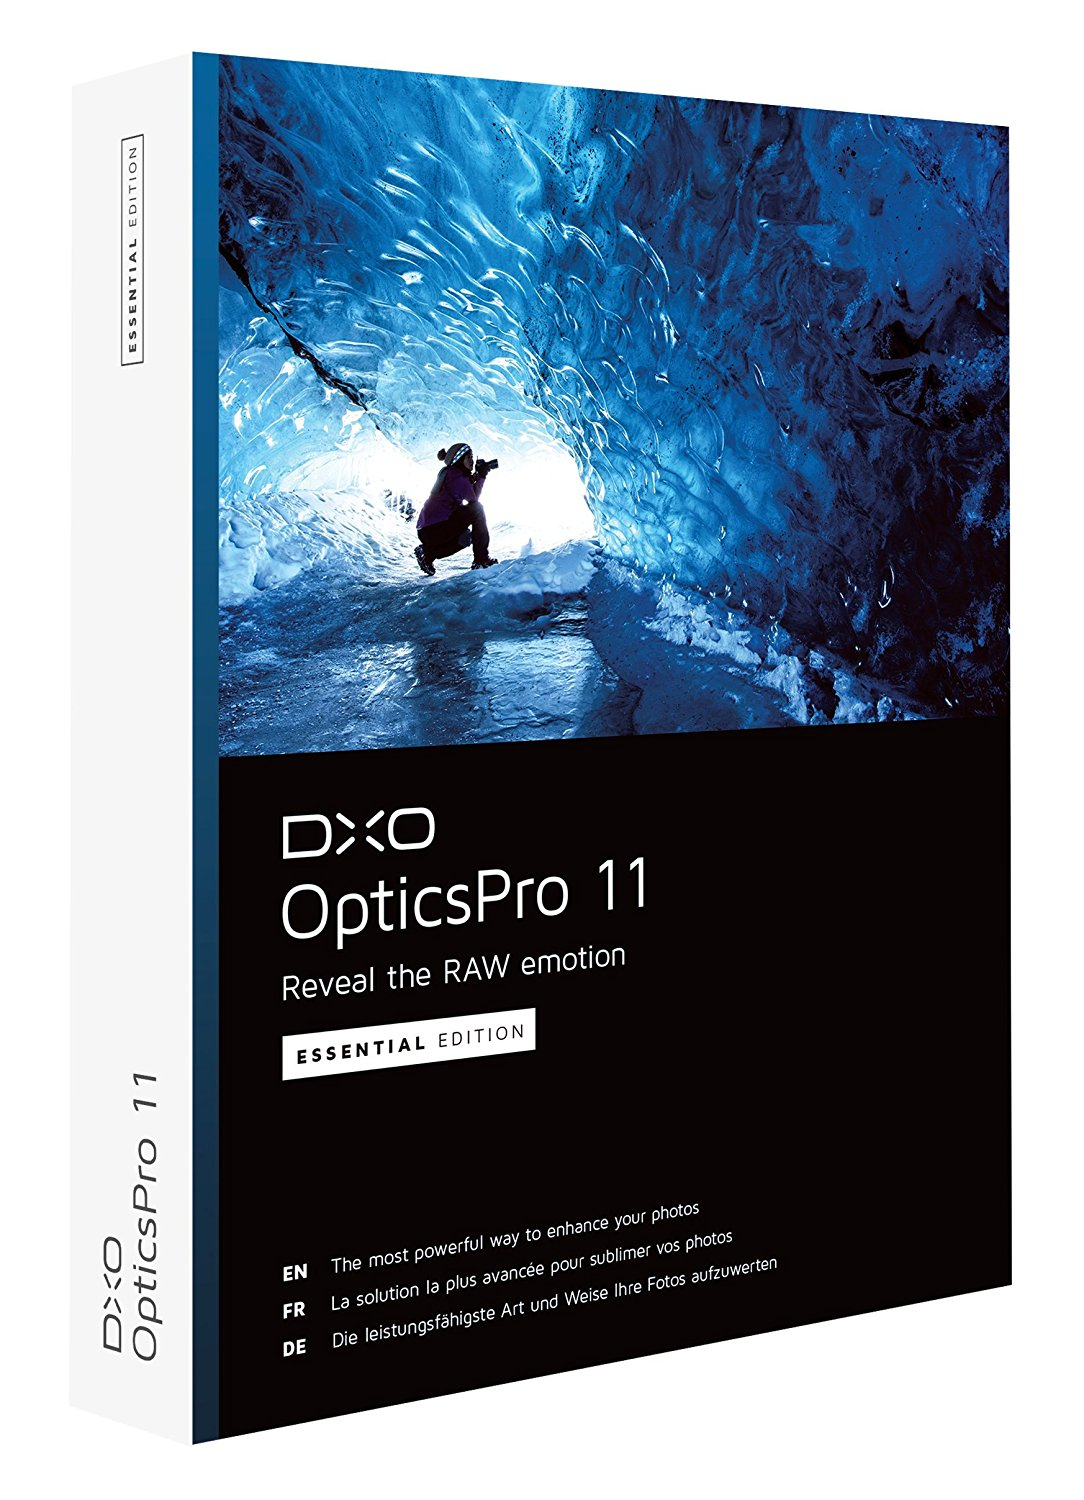 Free DxO OpticsPro 11 Essential (100% discount) - SharewareOnSale